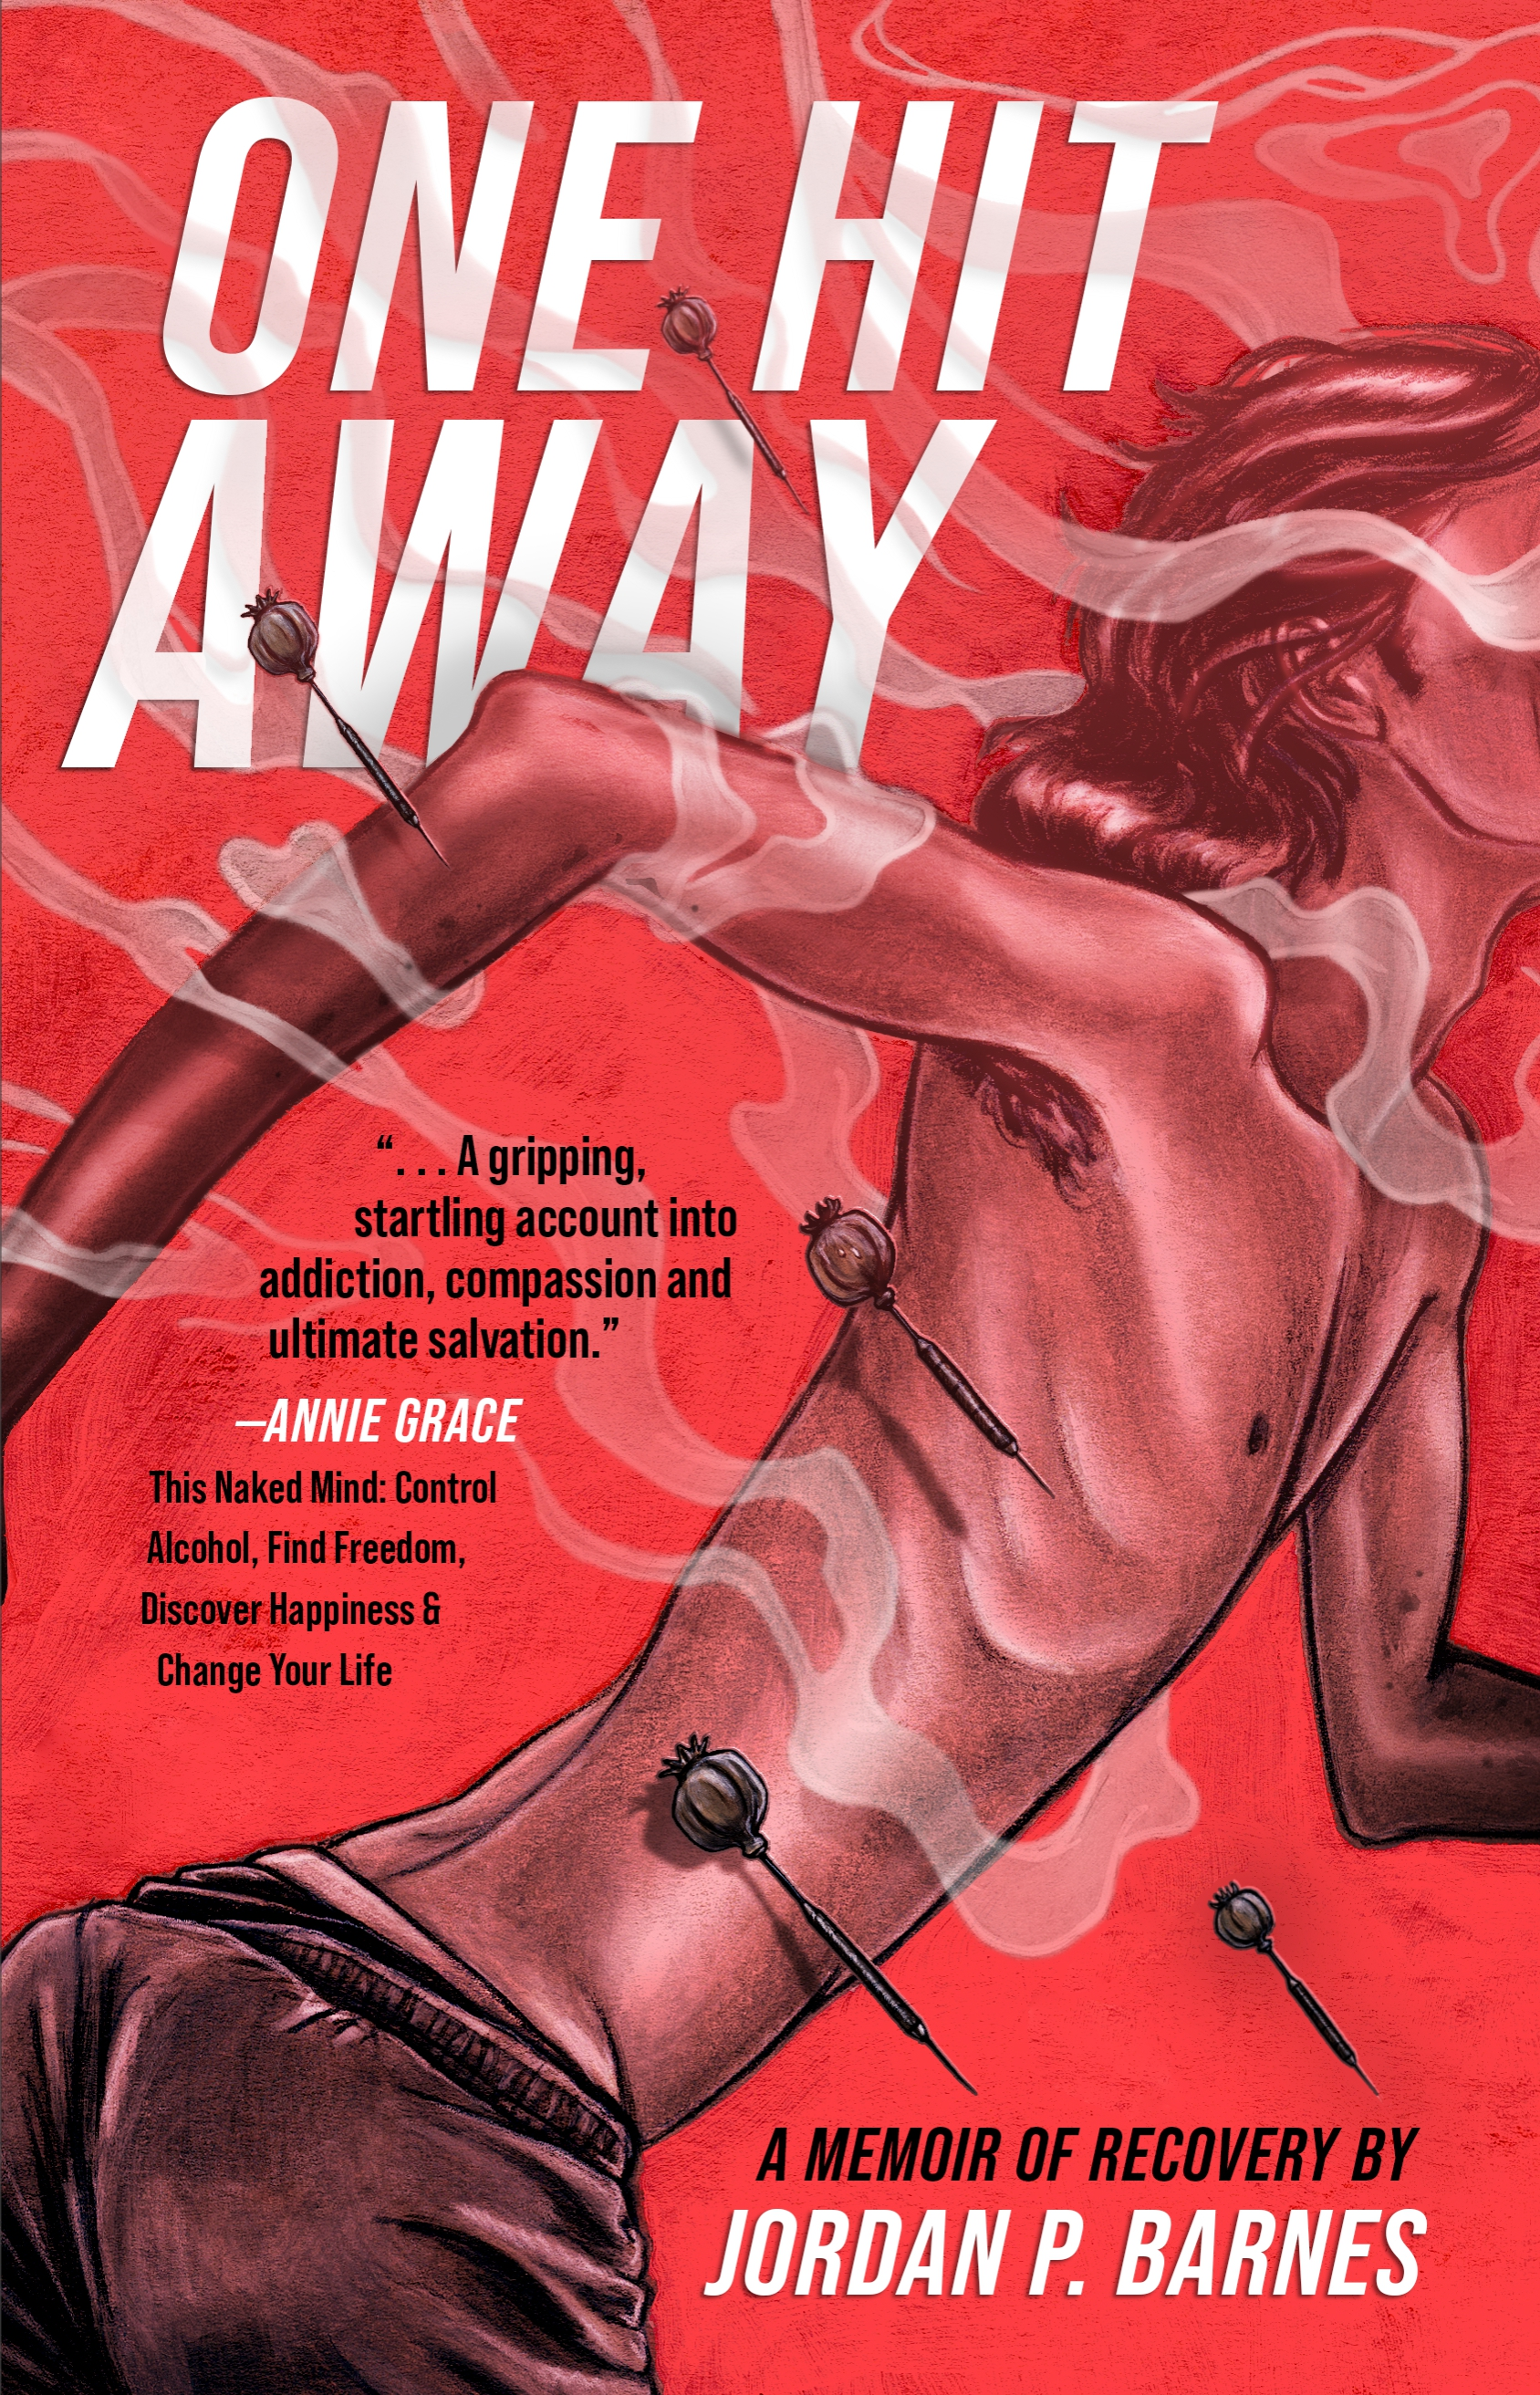 One Hit Away: A Memoir of Recovery